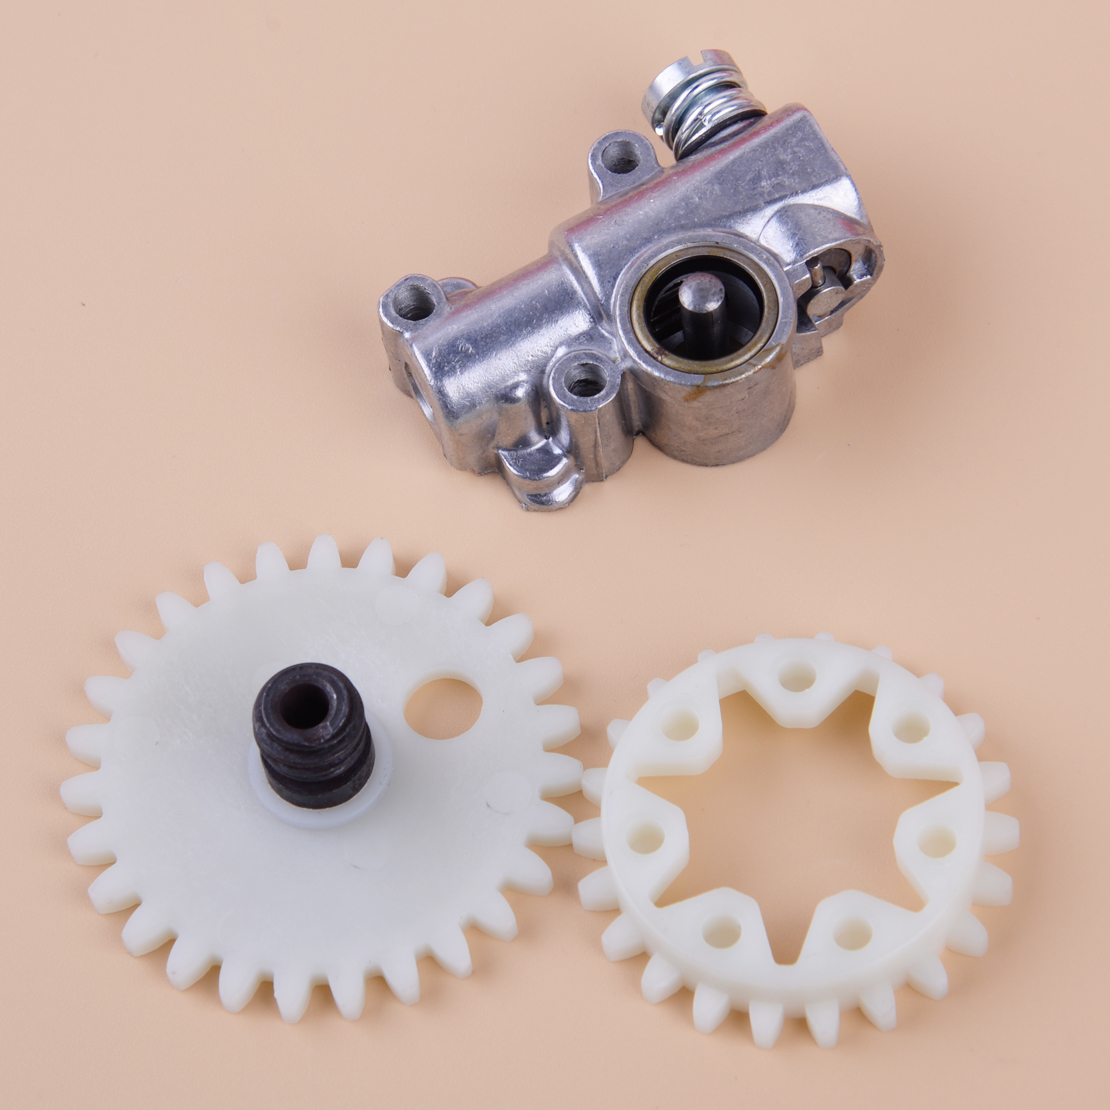 LETAOSK Chain Oil Pump Spur Gear Wheel Fit For Stihl 038 048 MS380 MS381 Chainsaw 1119 640 3200